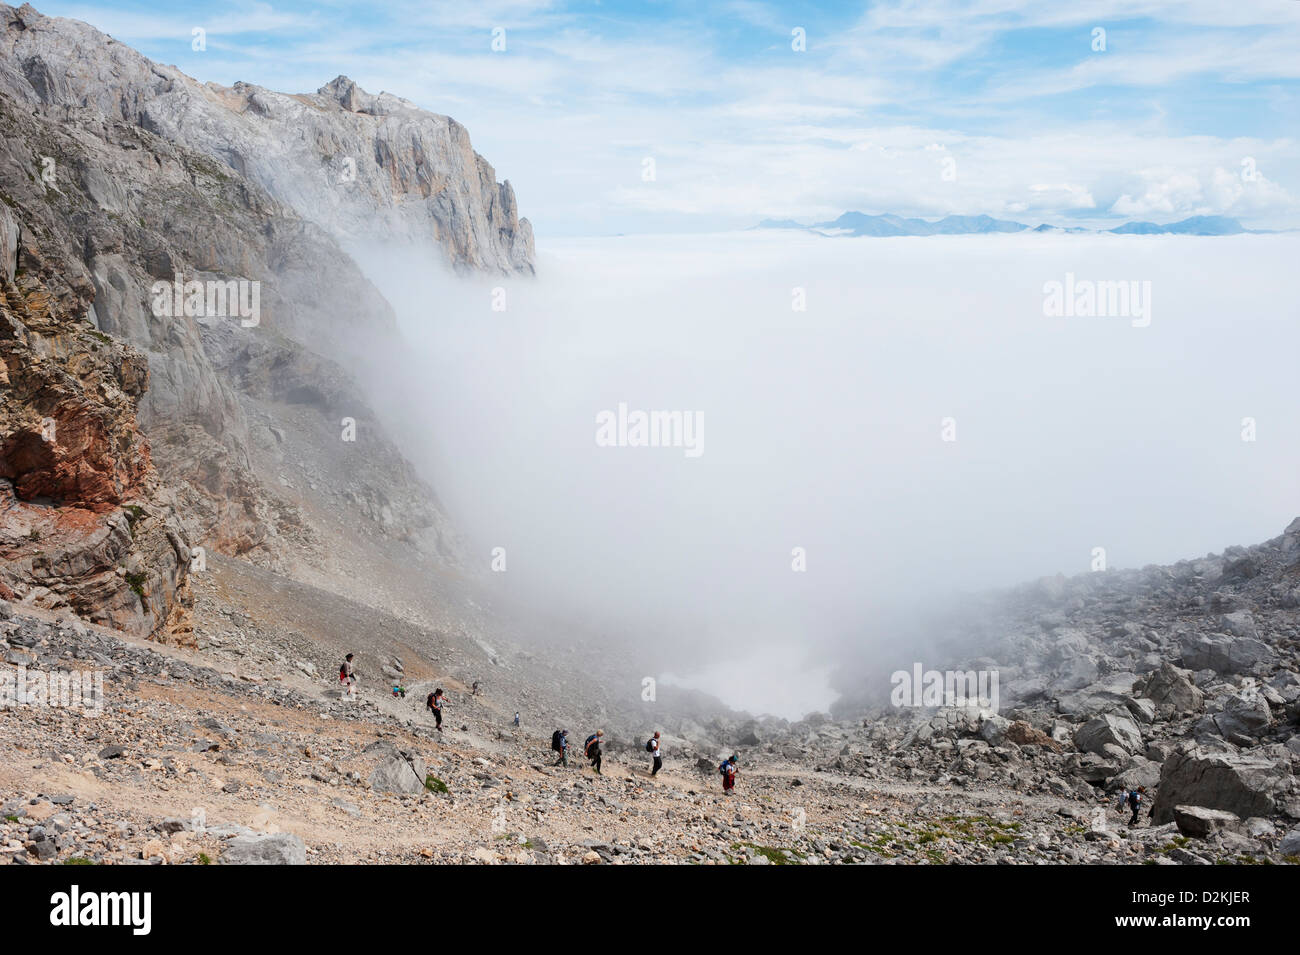 hikers, Picos de Europa National Park, shared by the provinces of Asturias, Cantabria and León, Spain - Stock Image